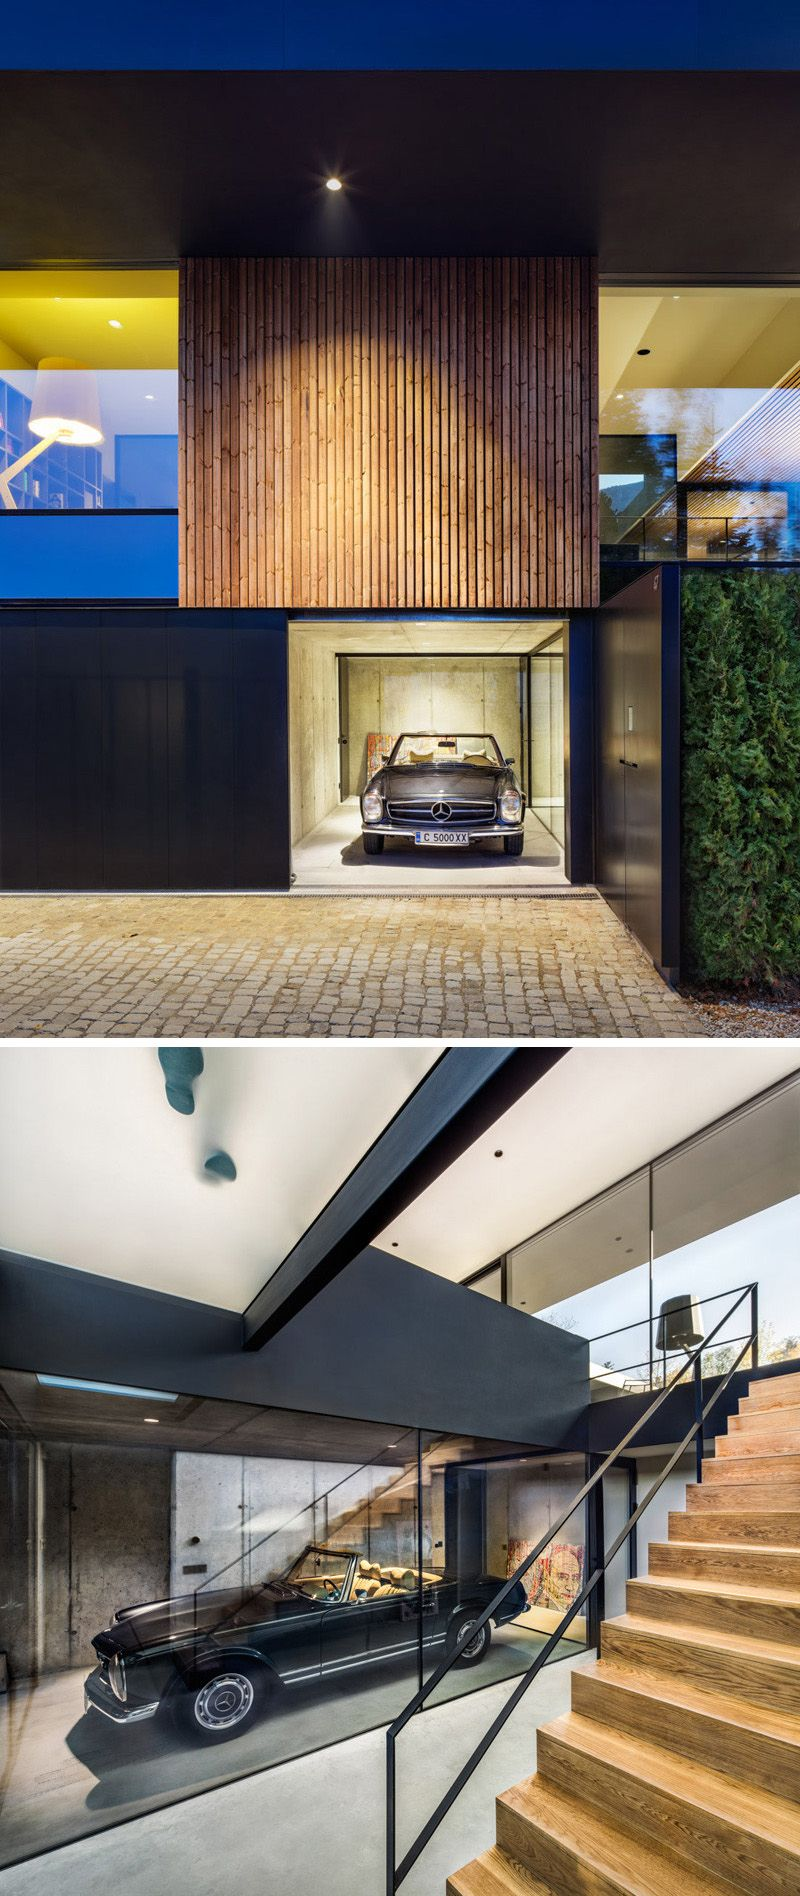 At The Side Of This Home, Is A Single Car Garage. The